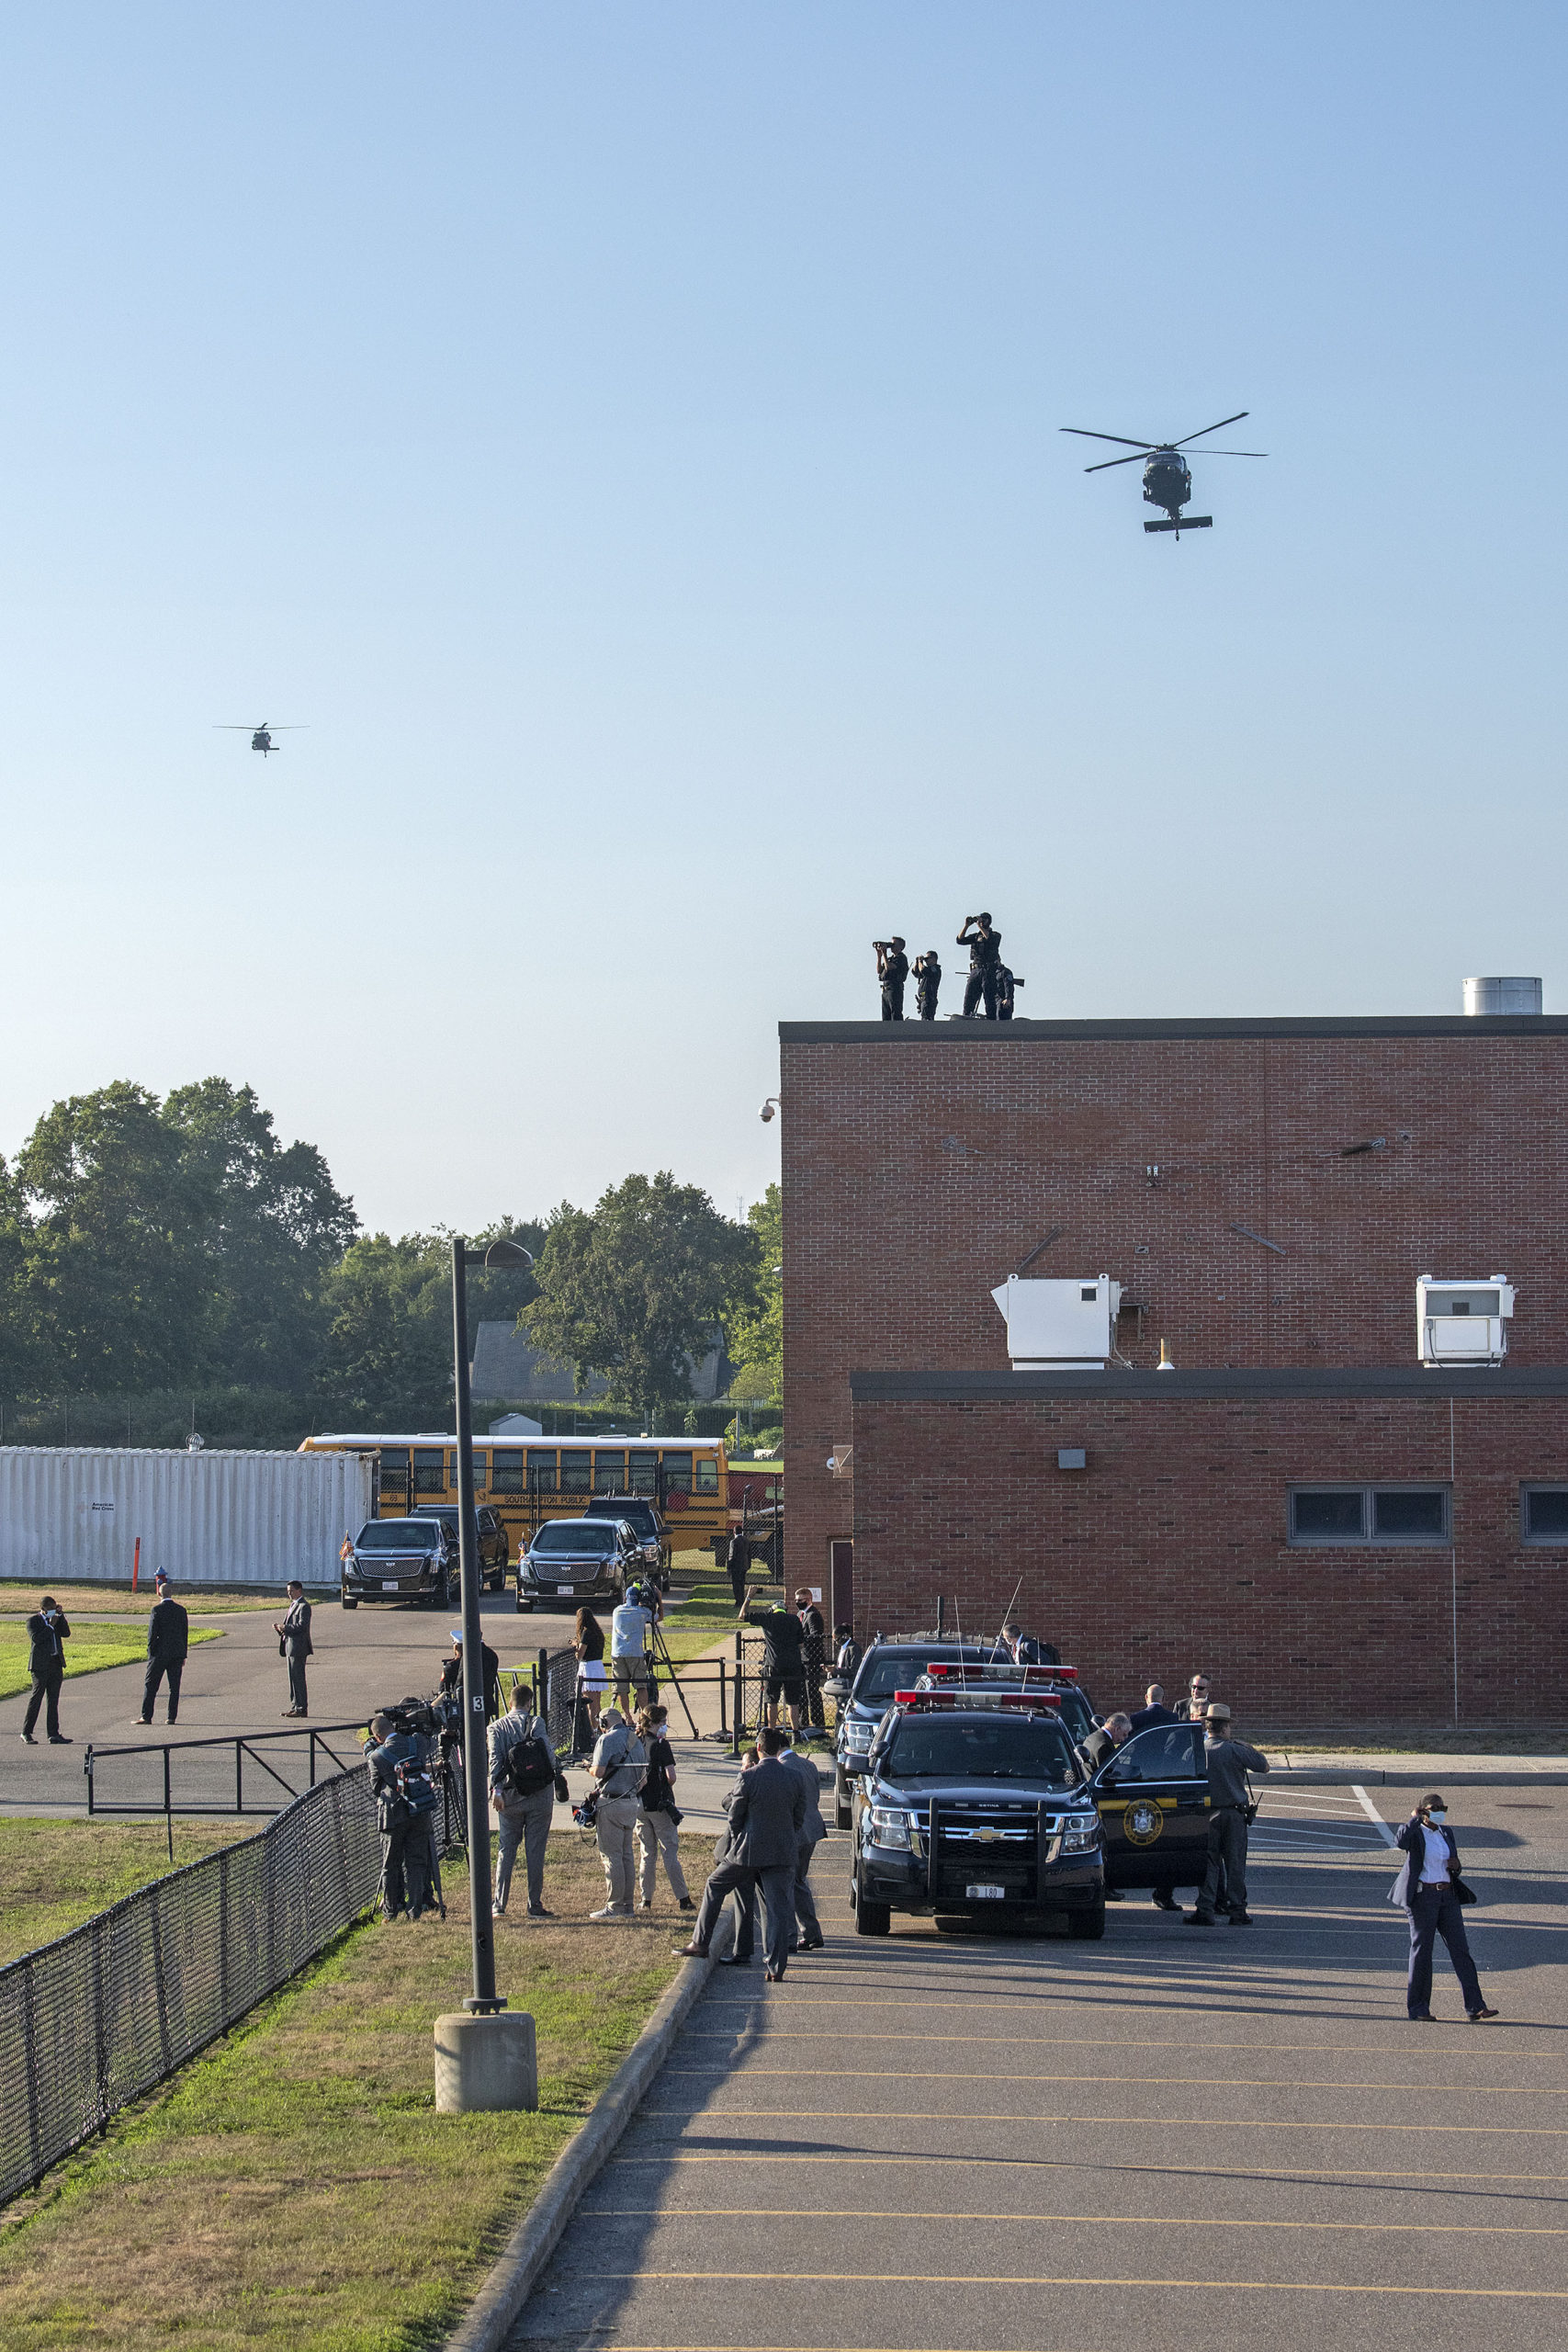 The presidential motorcade awaits as helicopters approach for a landing. Members of the Southampton Fire Department went on standby to provide fire protection as President Donald Trump arrived at the athletic fields behind Southampton High School during his visit to the Hamptons on Saturday.    MICHAEL HELLER